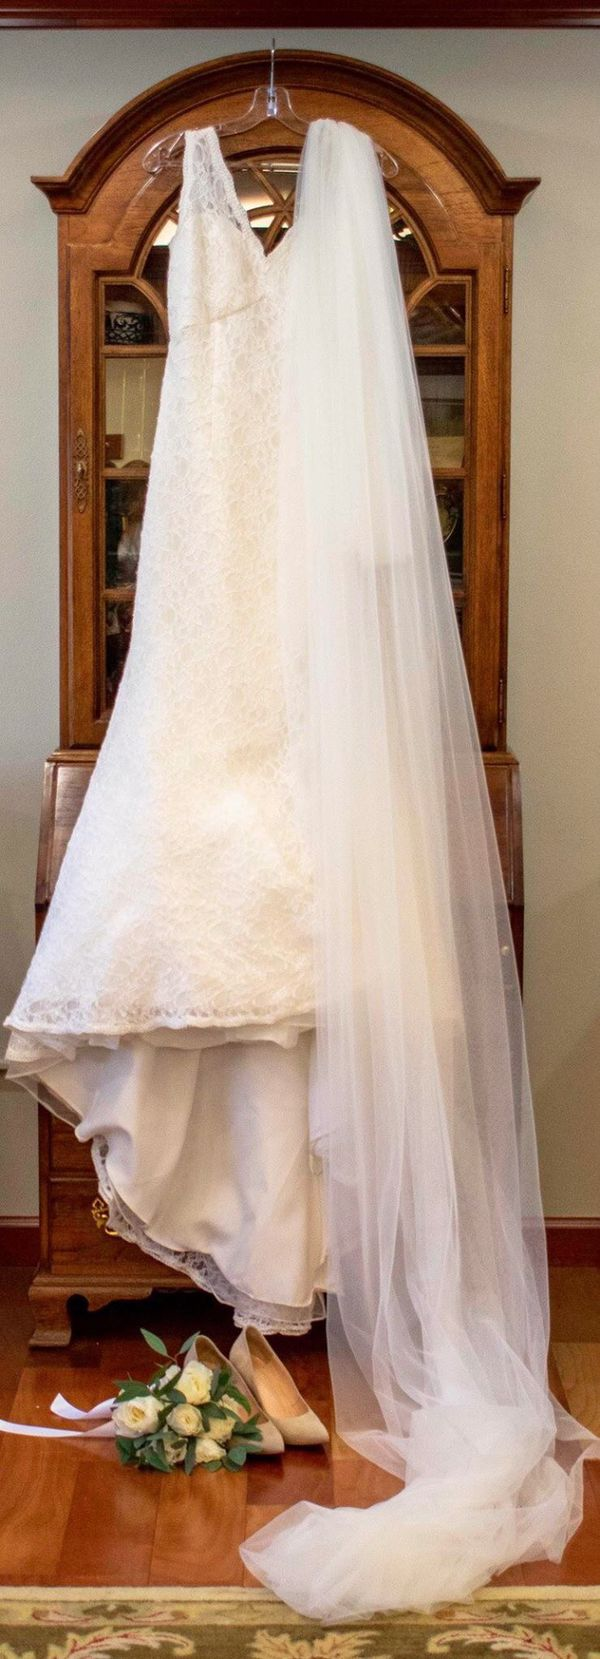 Resale Prom Dresses Springfield Mo Ficts